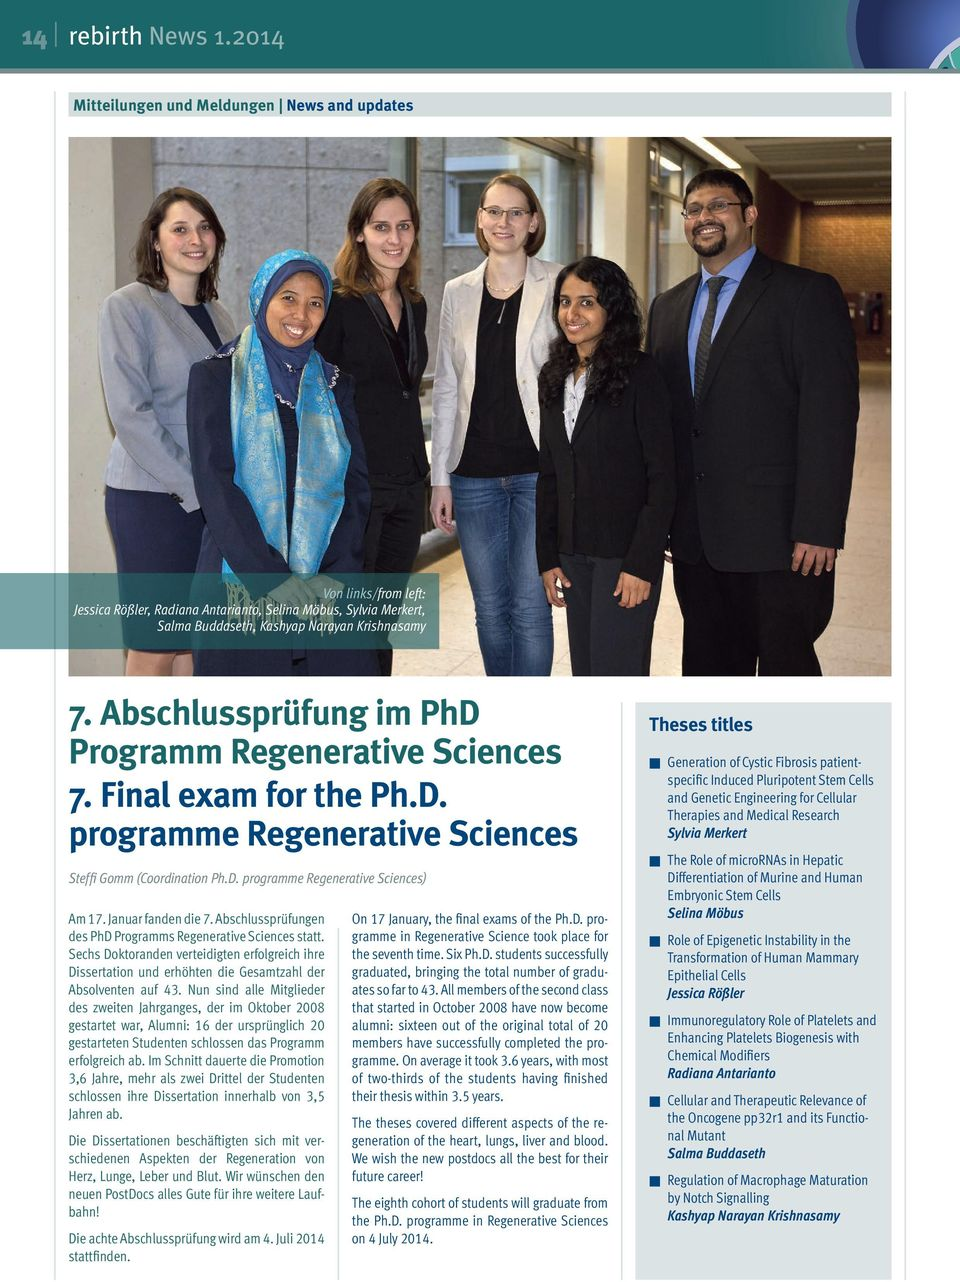 Abschlussprüfung im PhD Programm Regenerative Sciences 7. Final exam for the Ph.D. programme Regenerative Sciences Steffi Gomm (Coordination Ph.D. programme Regenerative Sciences) Am 17.